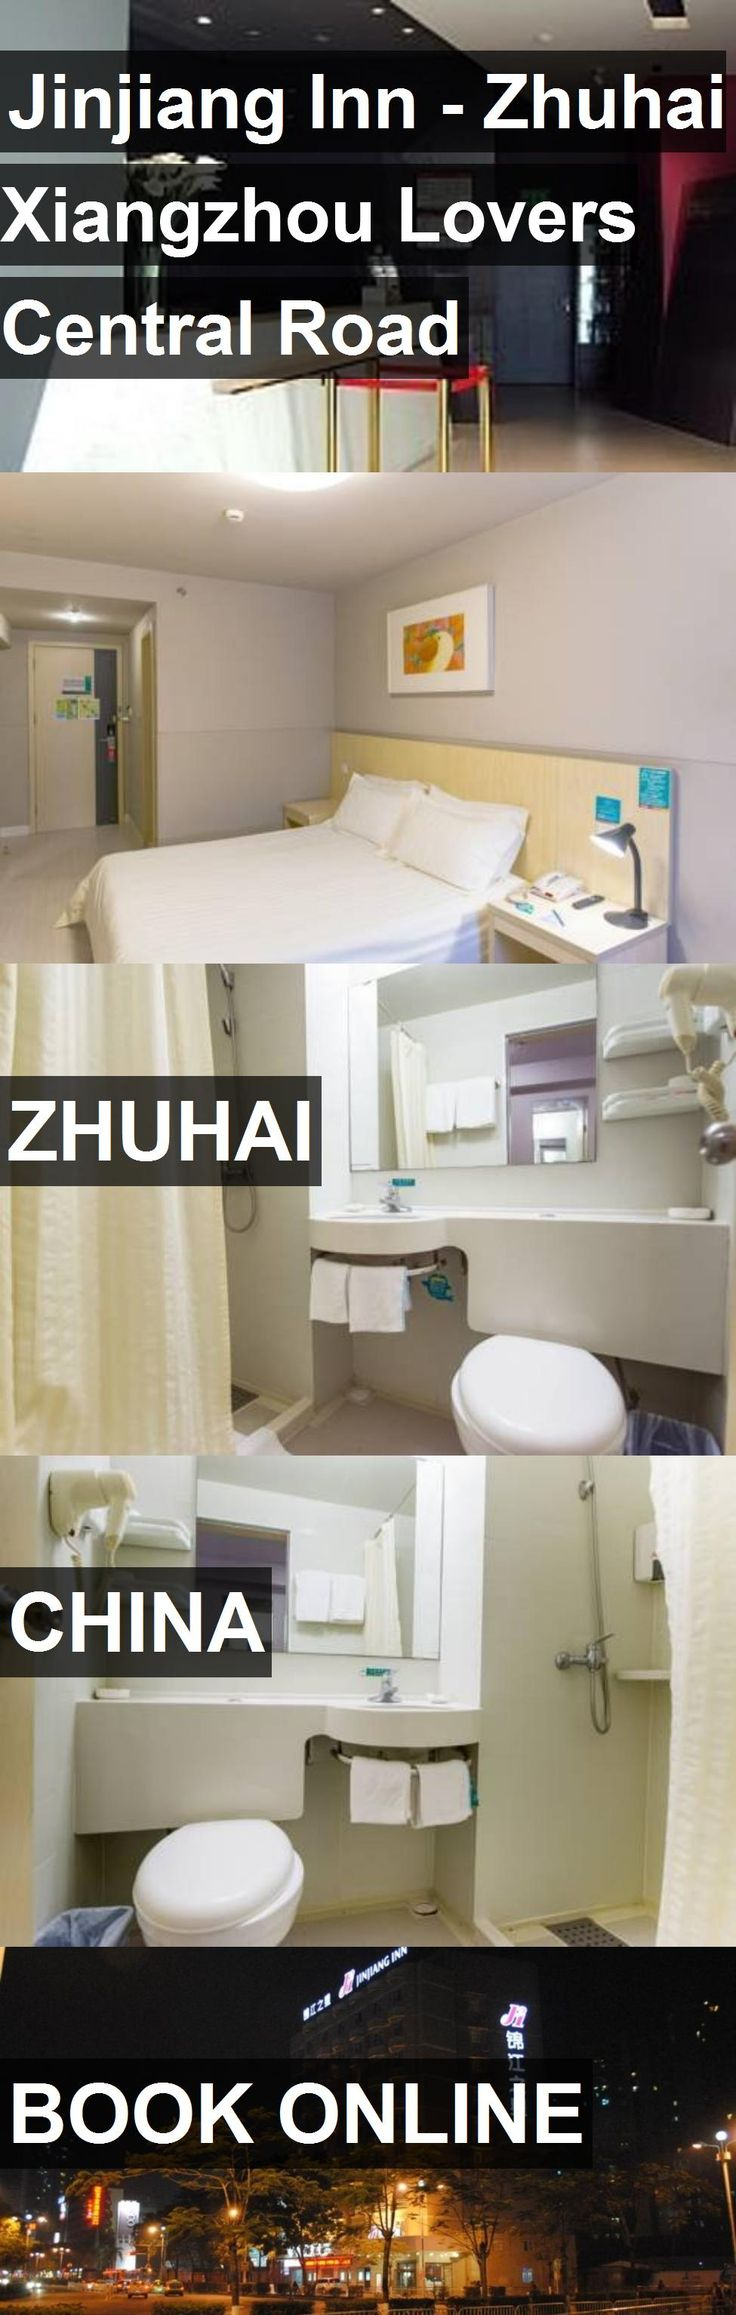 Hotel Jinjiang Inn - Zhuhai Xiangzhou Lovers Central Road in Zhuhai, China. For more information, photos, reviews and best prices please follow the link. #China #Zhuhai #travel #vacation #hotel